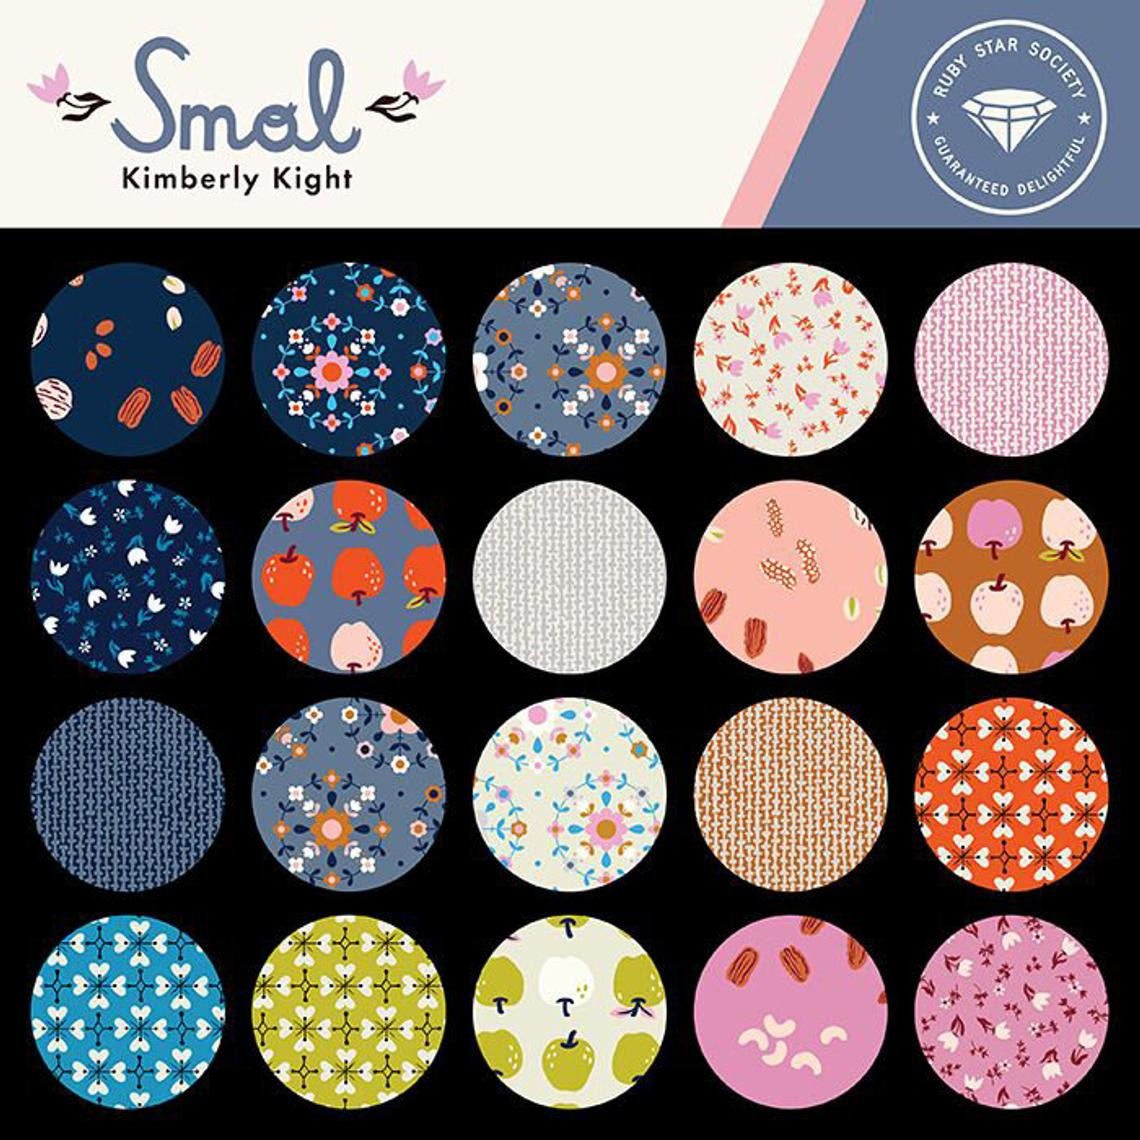 This FAT QUARTER BUNDLE contains 19 quilting cotton prints from Smol by Kimberly Kight for Ruby Star Society.  Manufacturer: Ruby Star Society Designer: Kimberly Kight Collection: Smol Material: 100% Cotton  Weight: Quilting